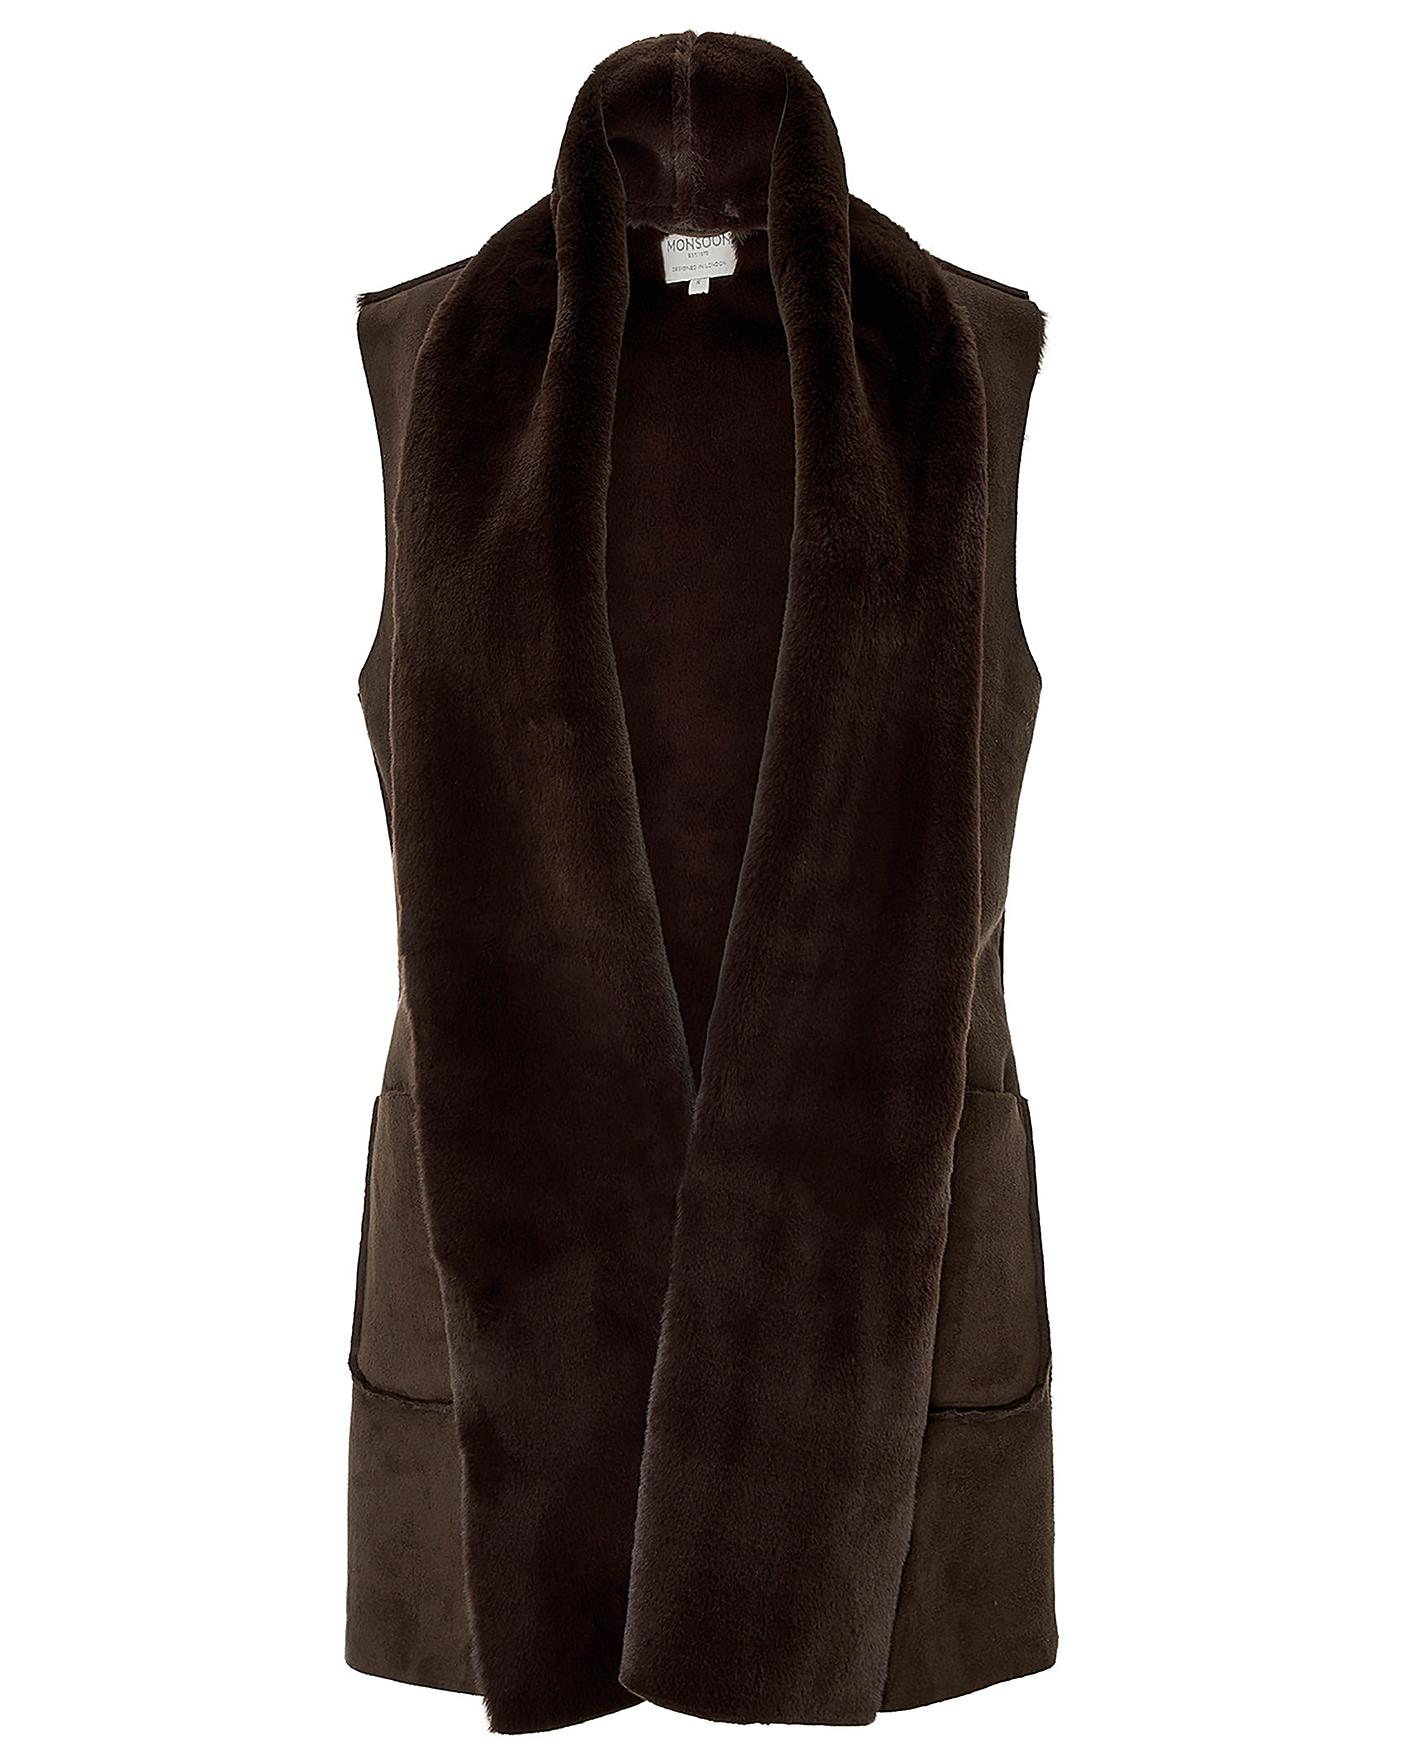 Monsoon Sherry Suedette Gilet